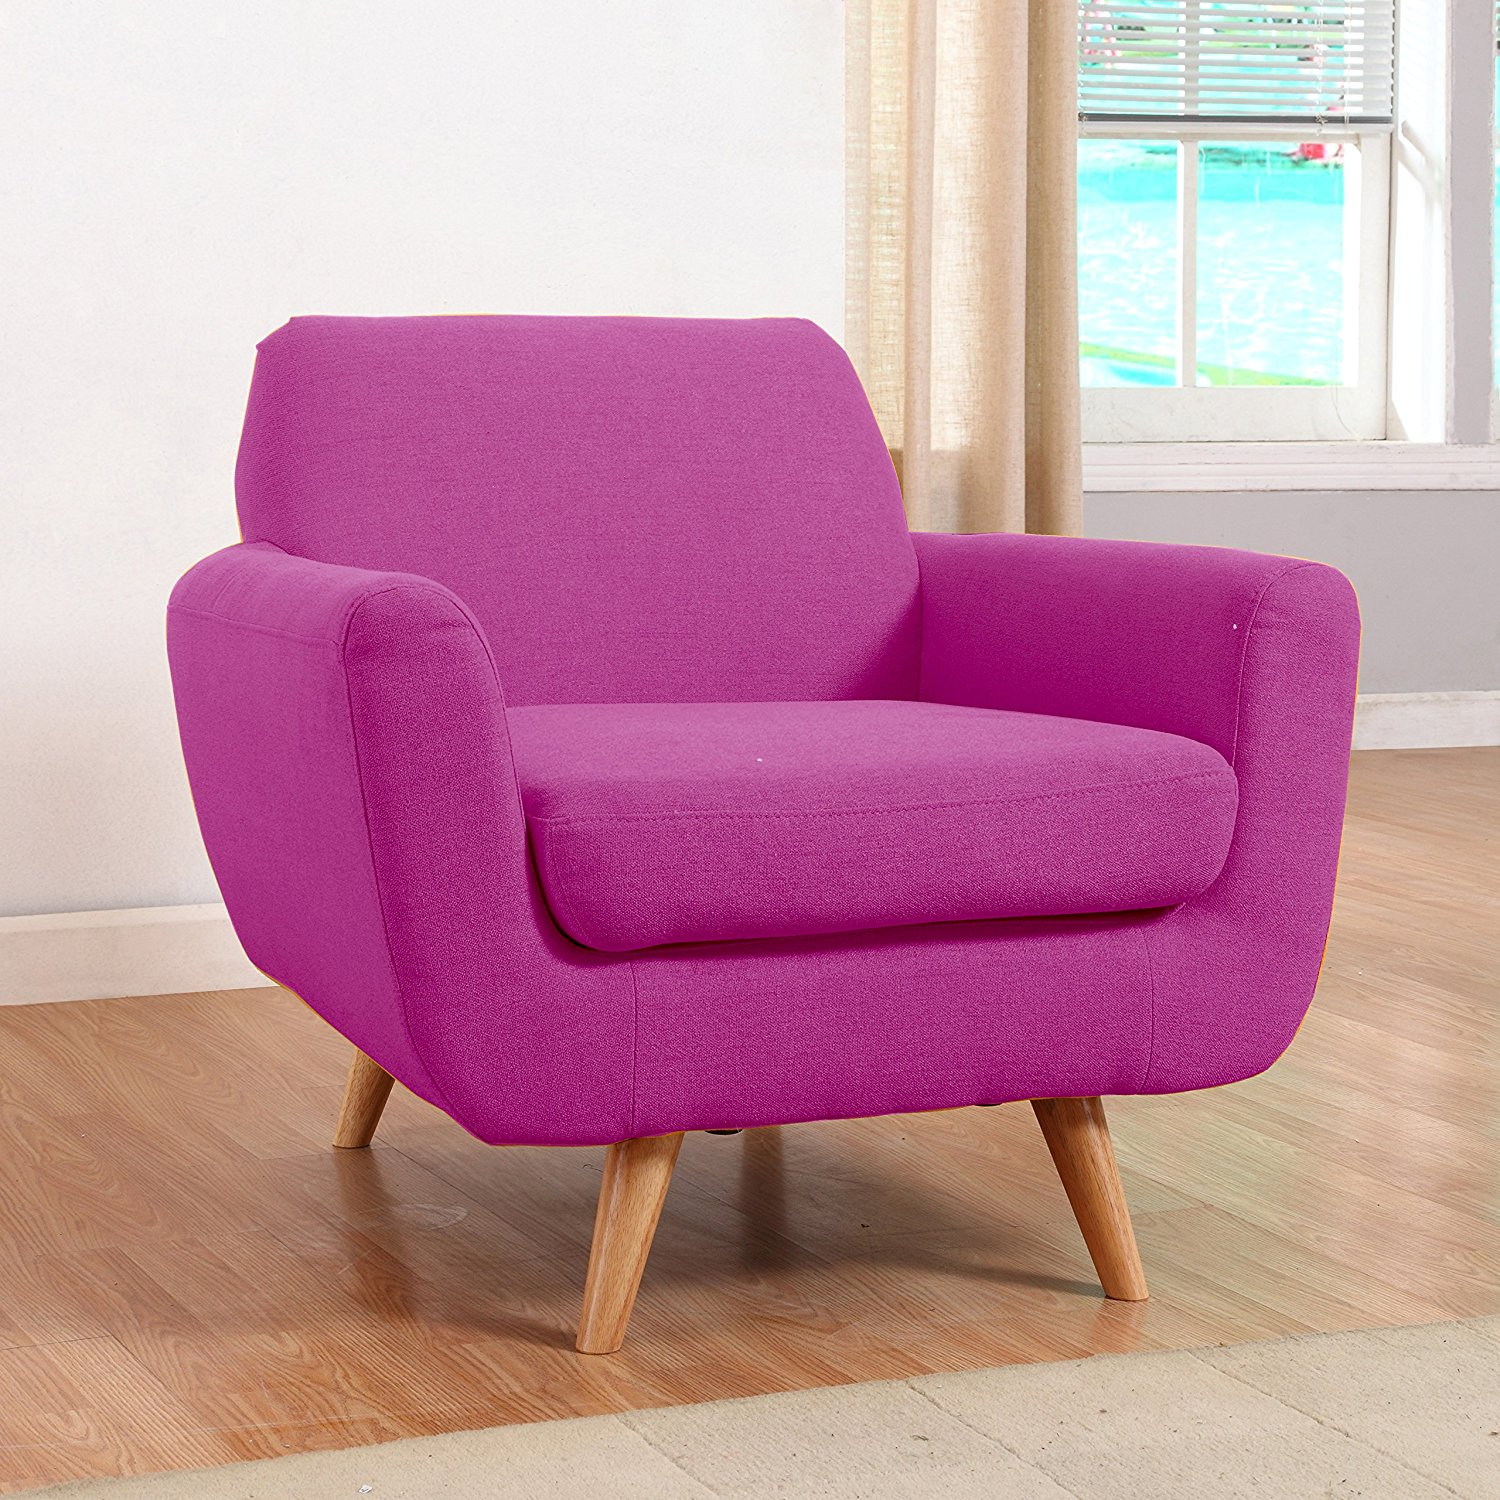 Warm Purple Sofa to Complete Your Living Room Decor: Purple Velvet Sofa For Sale | Purple Sofa | Lavender Leather Sofa